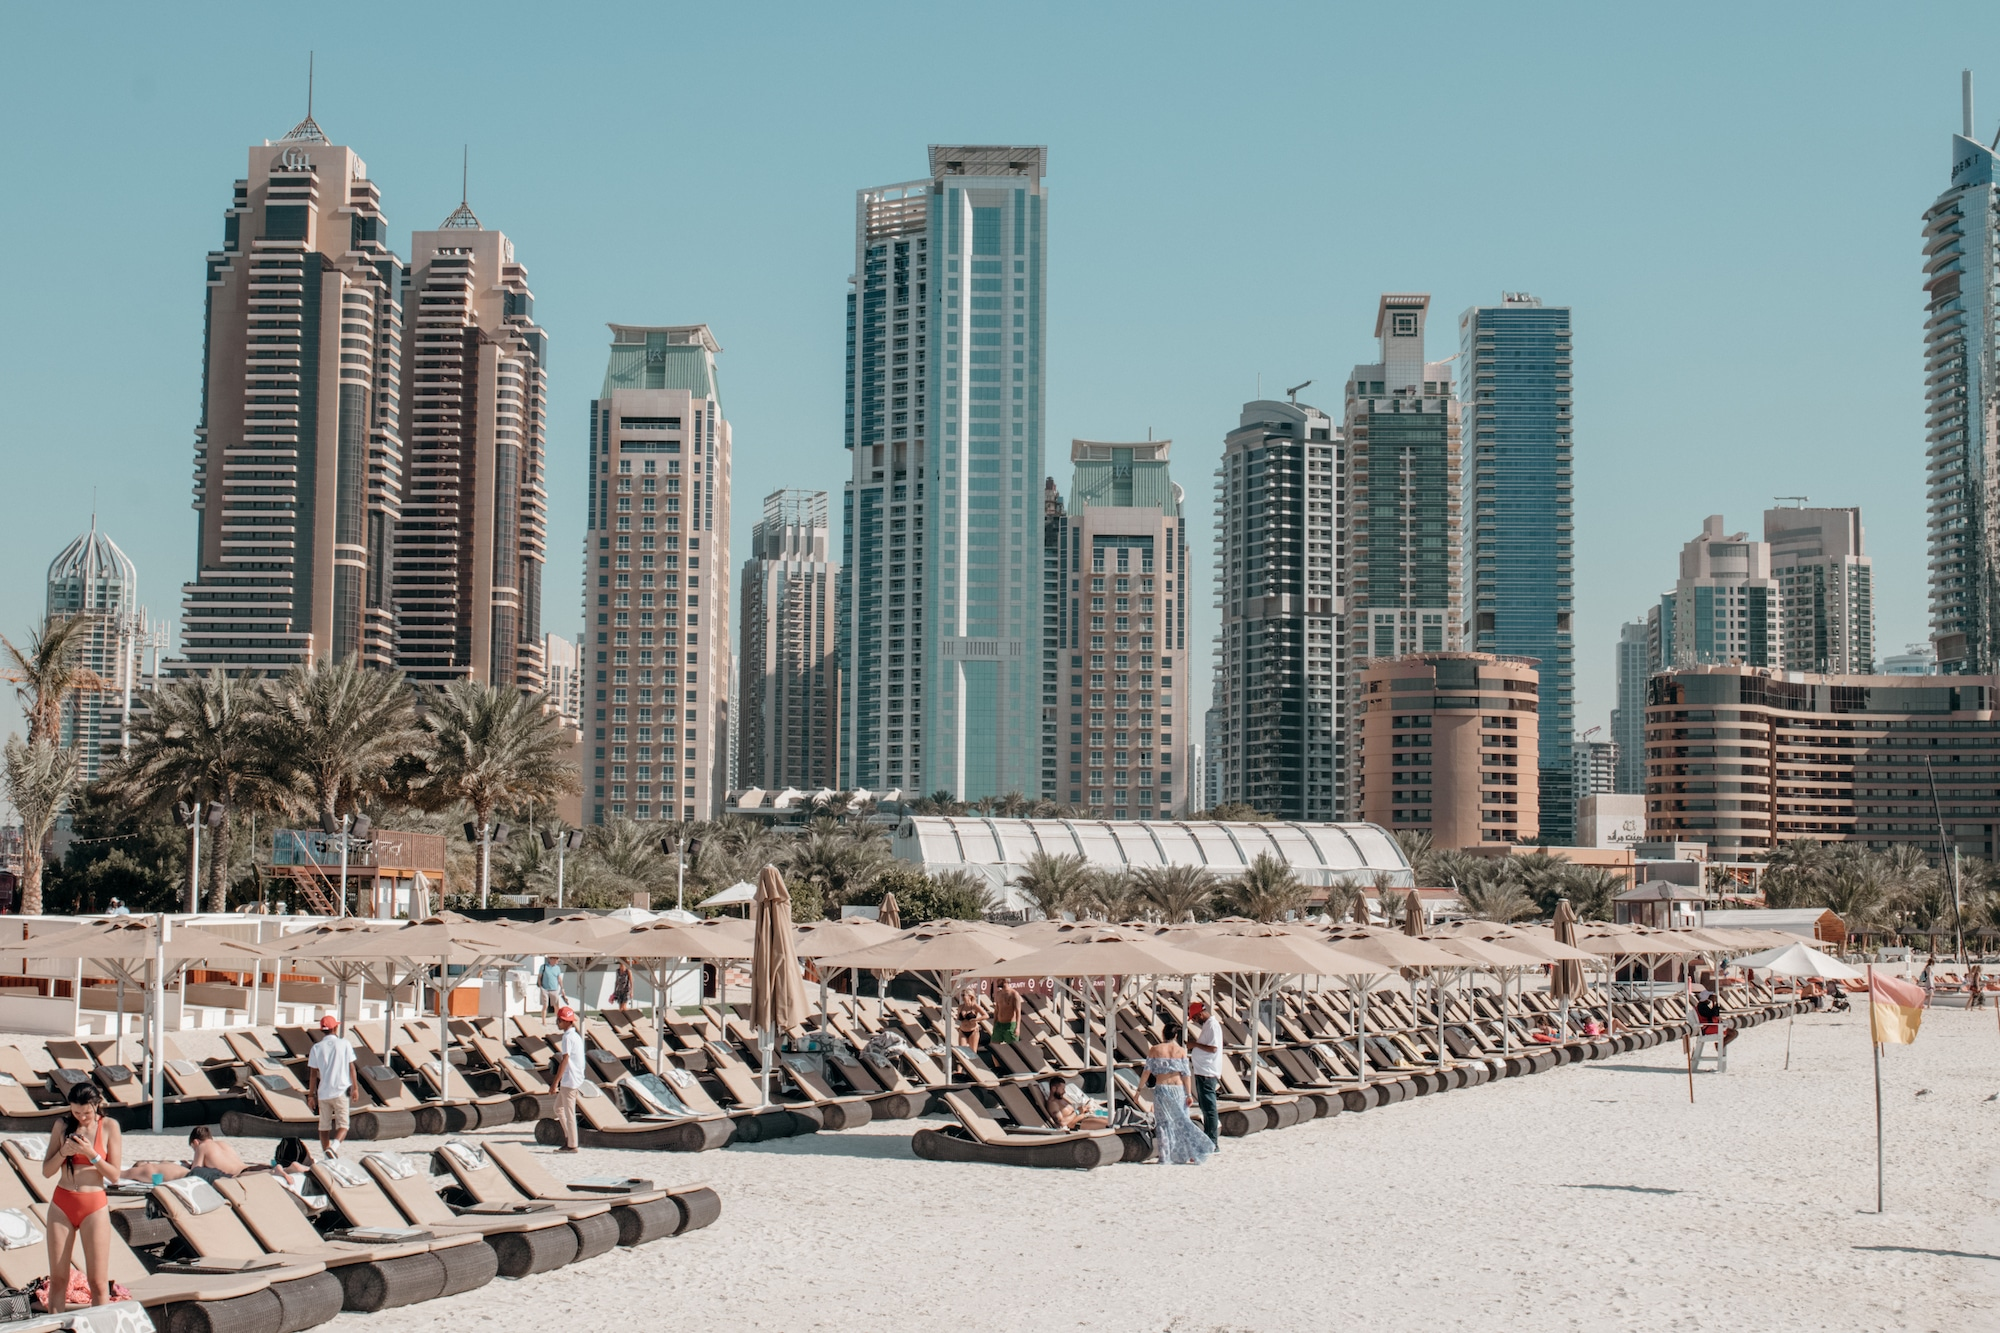 skyline am jbr beach dubai